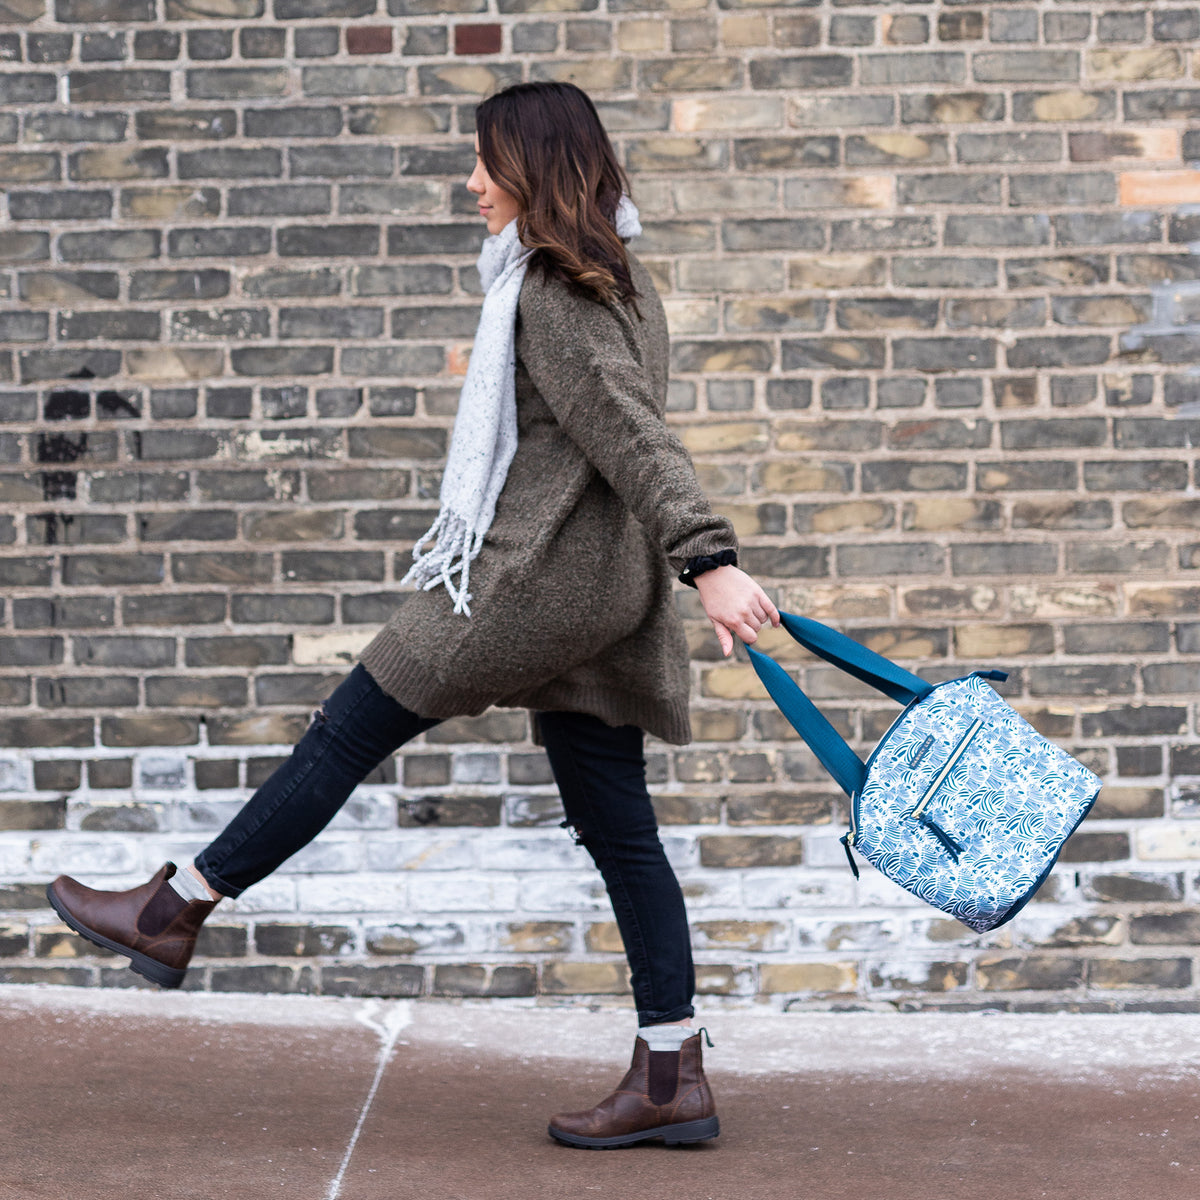 Arctic Zone® Dabney Lee Soft Tote - Bruno - Lifestyle, swinging the bag while waling to work